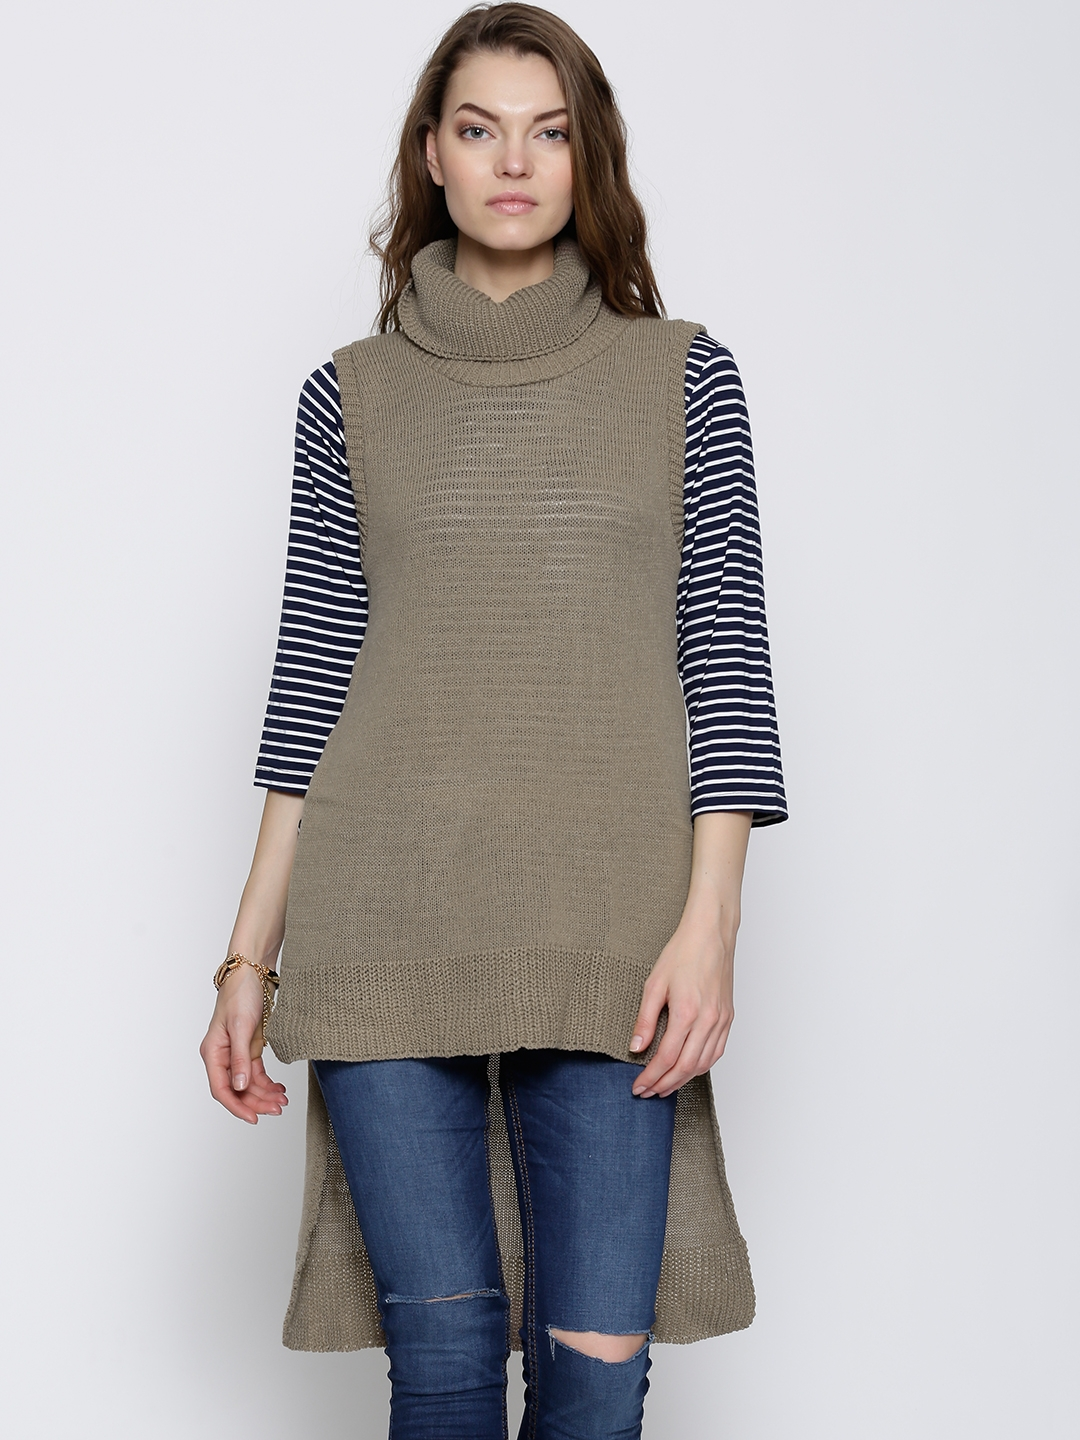 bf83bdfc20a2 Buy Boohoo Taupe High Low Winter Tunic - Tunics for Women 1129910 ...